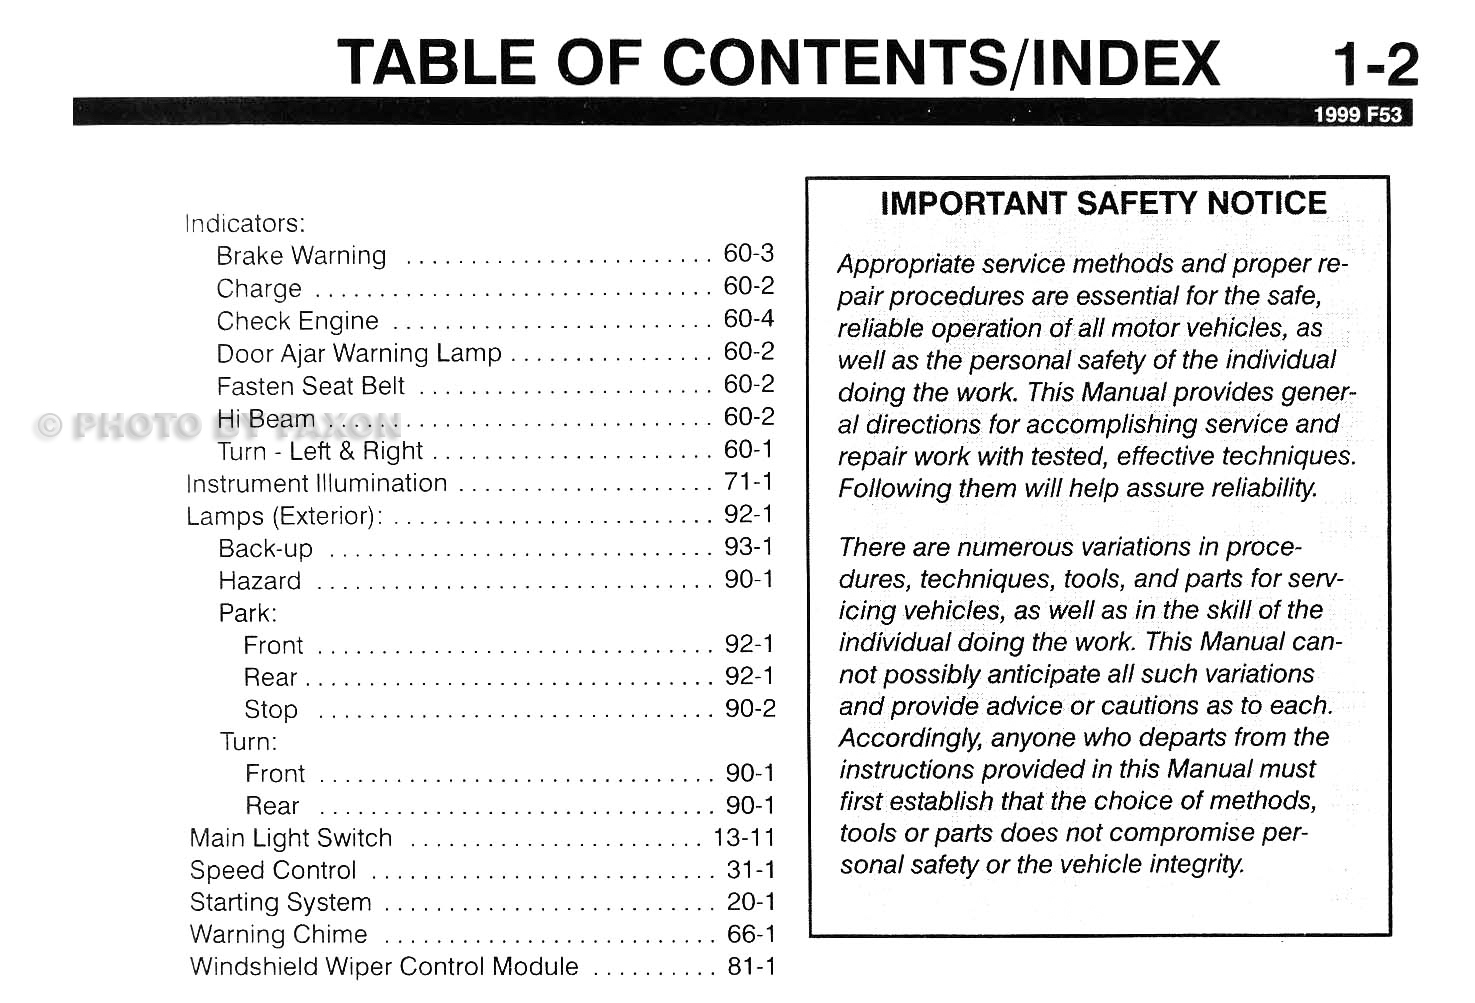 1999 Ford F53 Motorhome Class A Chassis Wiring Diagram Manual 1969 Bronco Fuse Box Table Of Contents Page 2